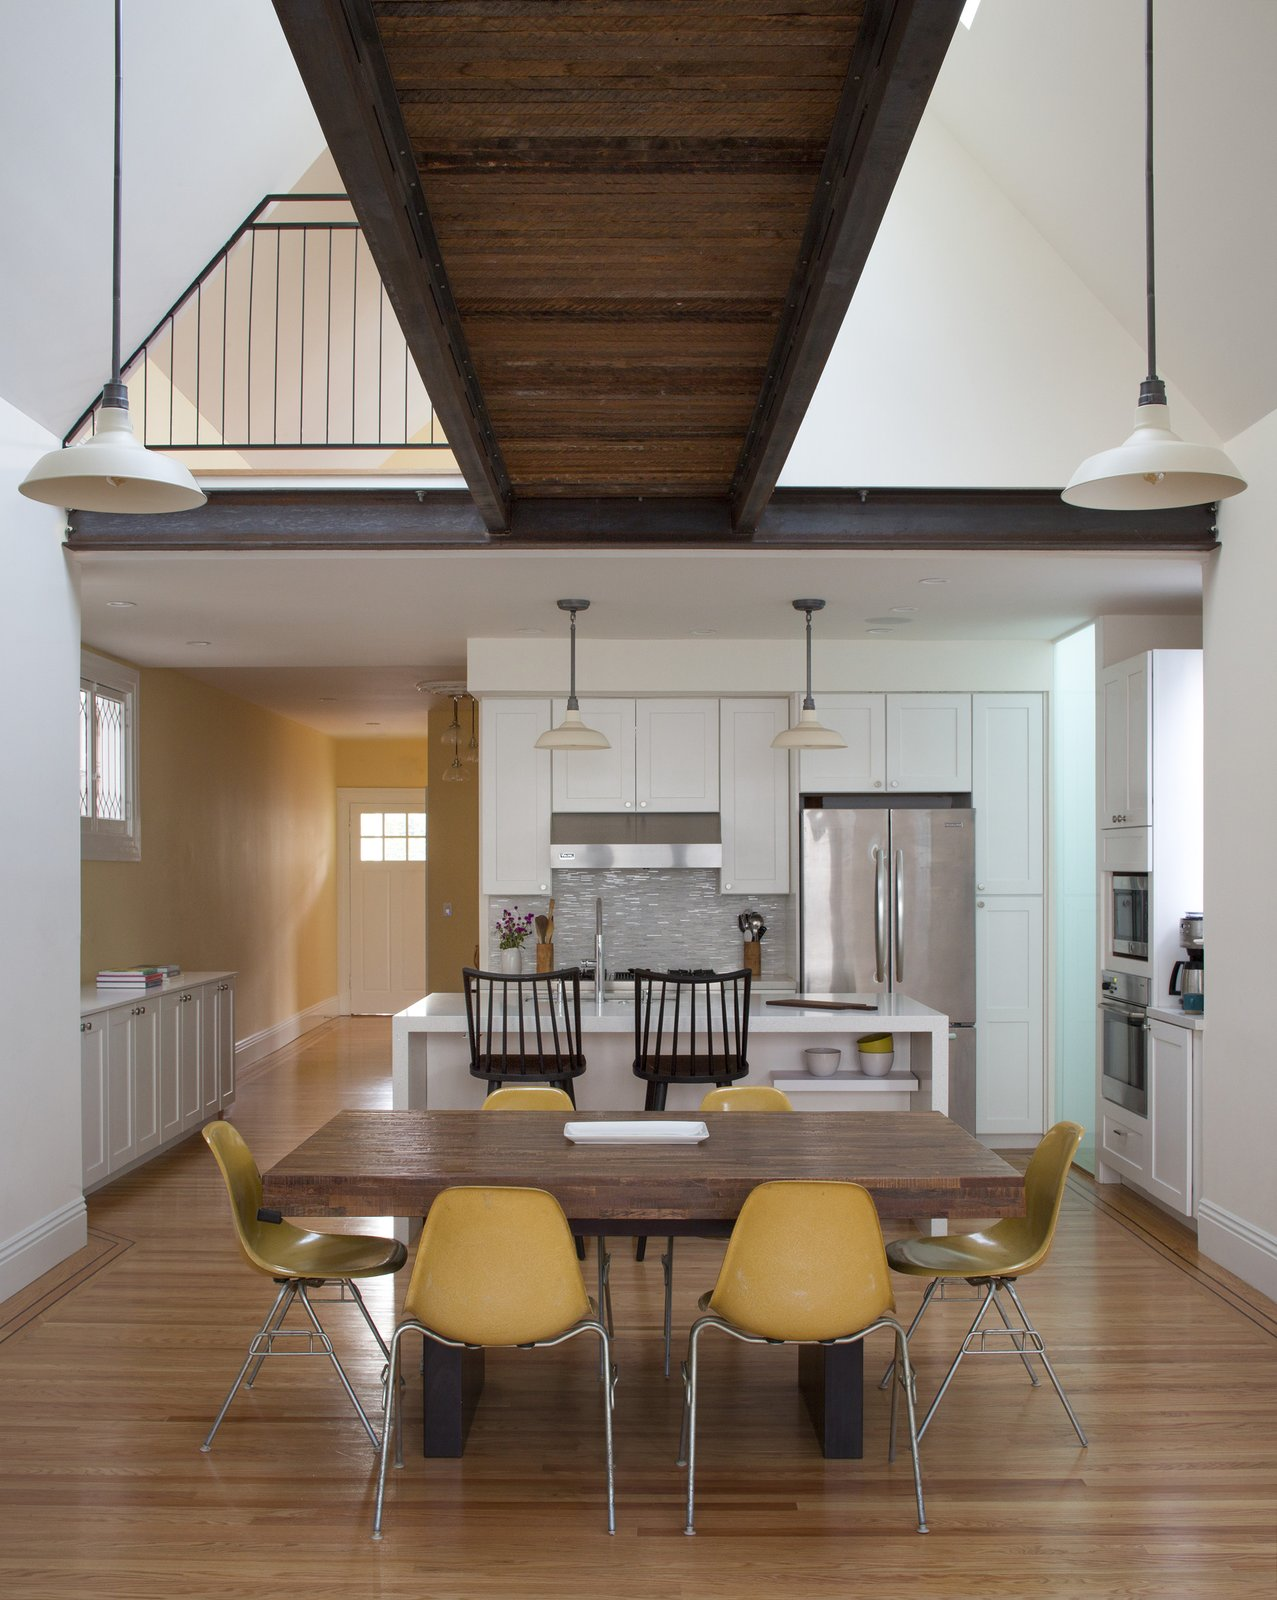 Dining Room, Light Hardwood Floor, Pendant Lighting, and Chair view of dining and kitchen with bridge above  Bridge House by McElroy Architecture